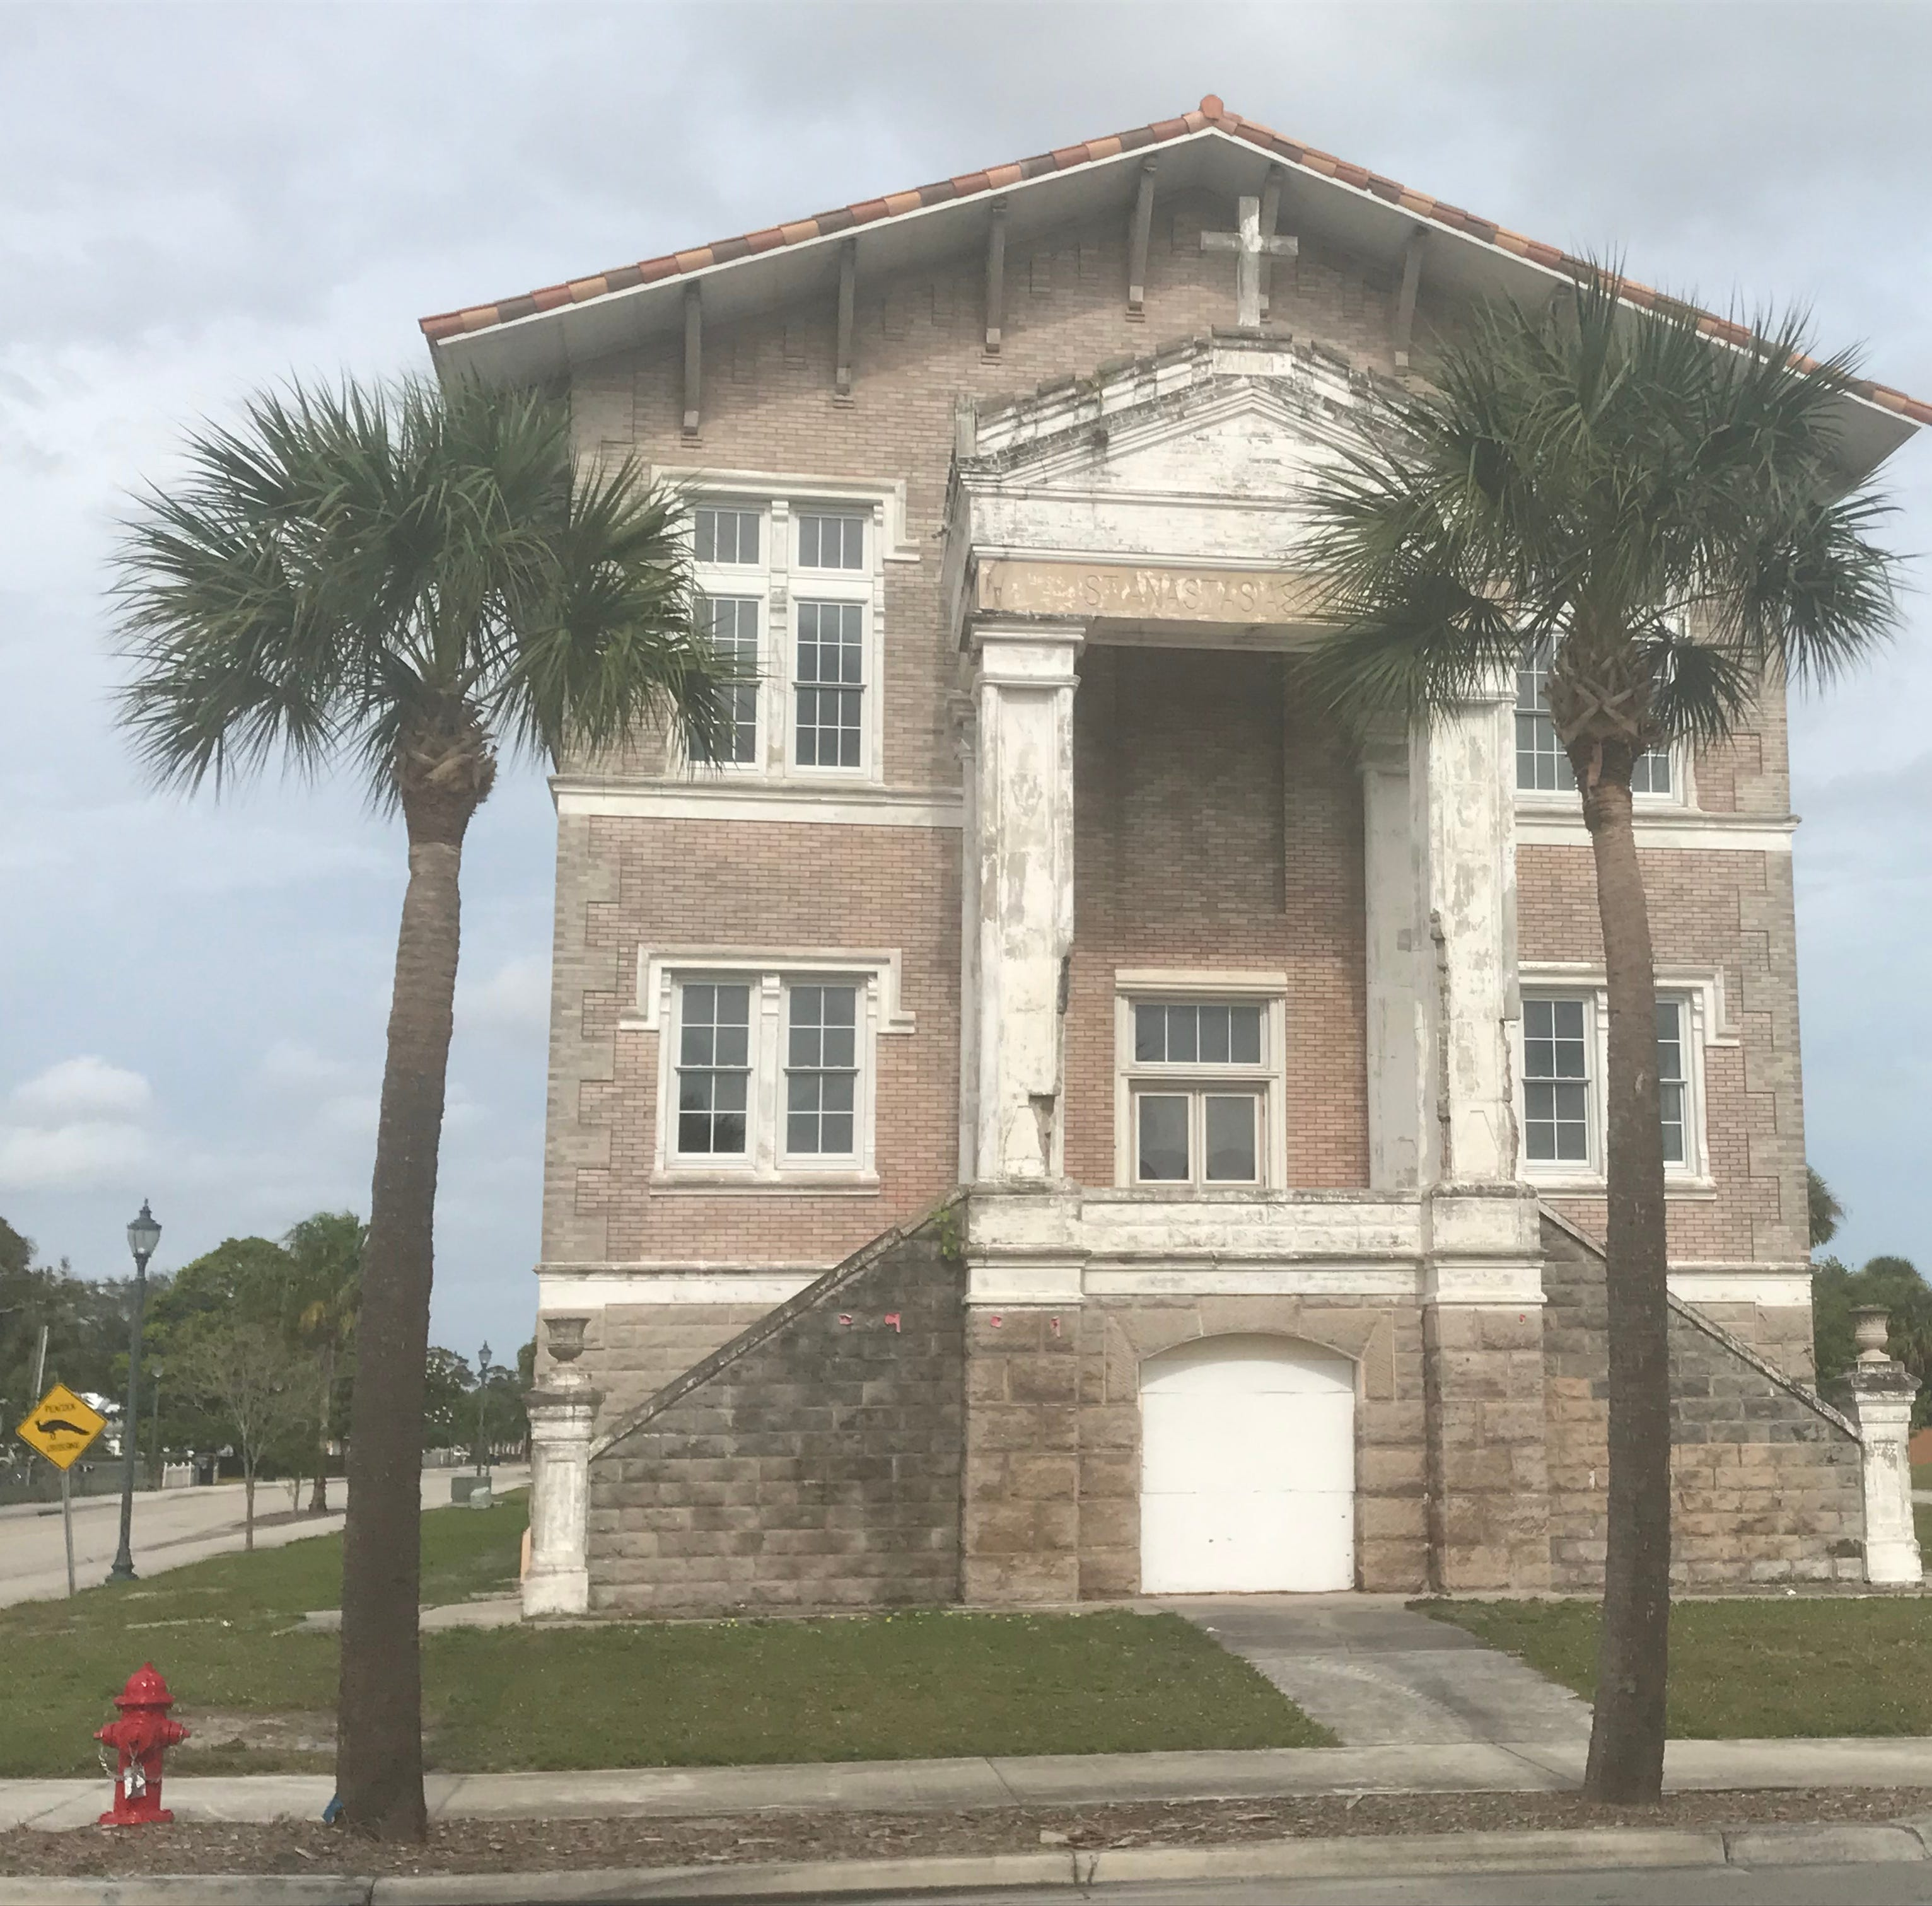 Fort Pierce seeks developer to renovate Old St. Anastasia Catholic School